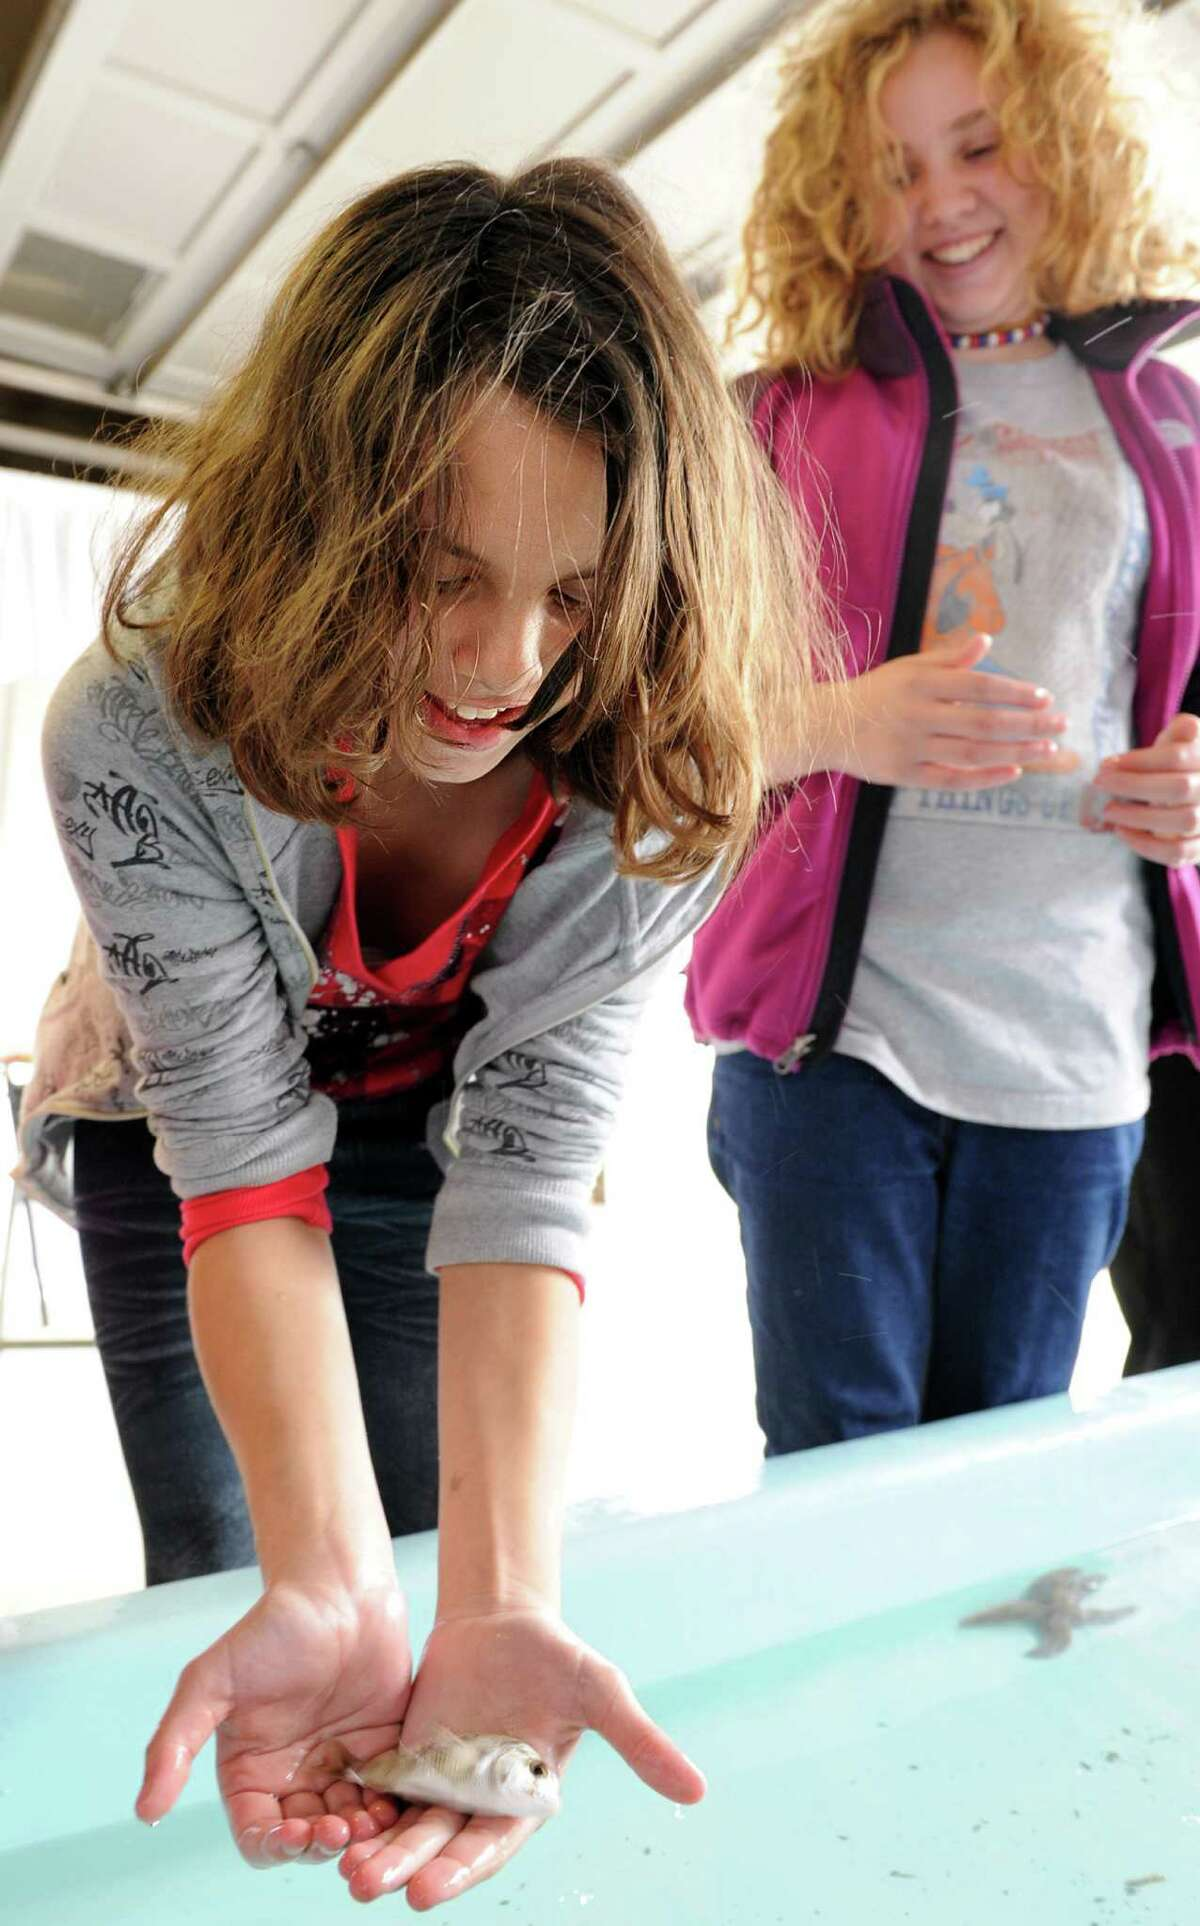 In this file photo, Ariel Rodriguez, a sixth-grader at The Montessori Middle School in Norwalk, holds a porgy fish Friday Oct. 15, 2010 during an open house at the National Oceanic and Atmospheric Agency lab in Milford. The lab will stage an open house on Saturday, Oct. 17, 2015.